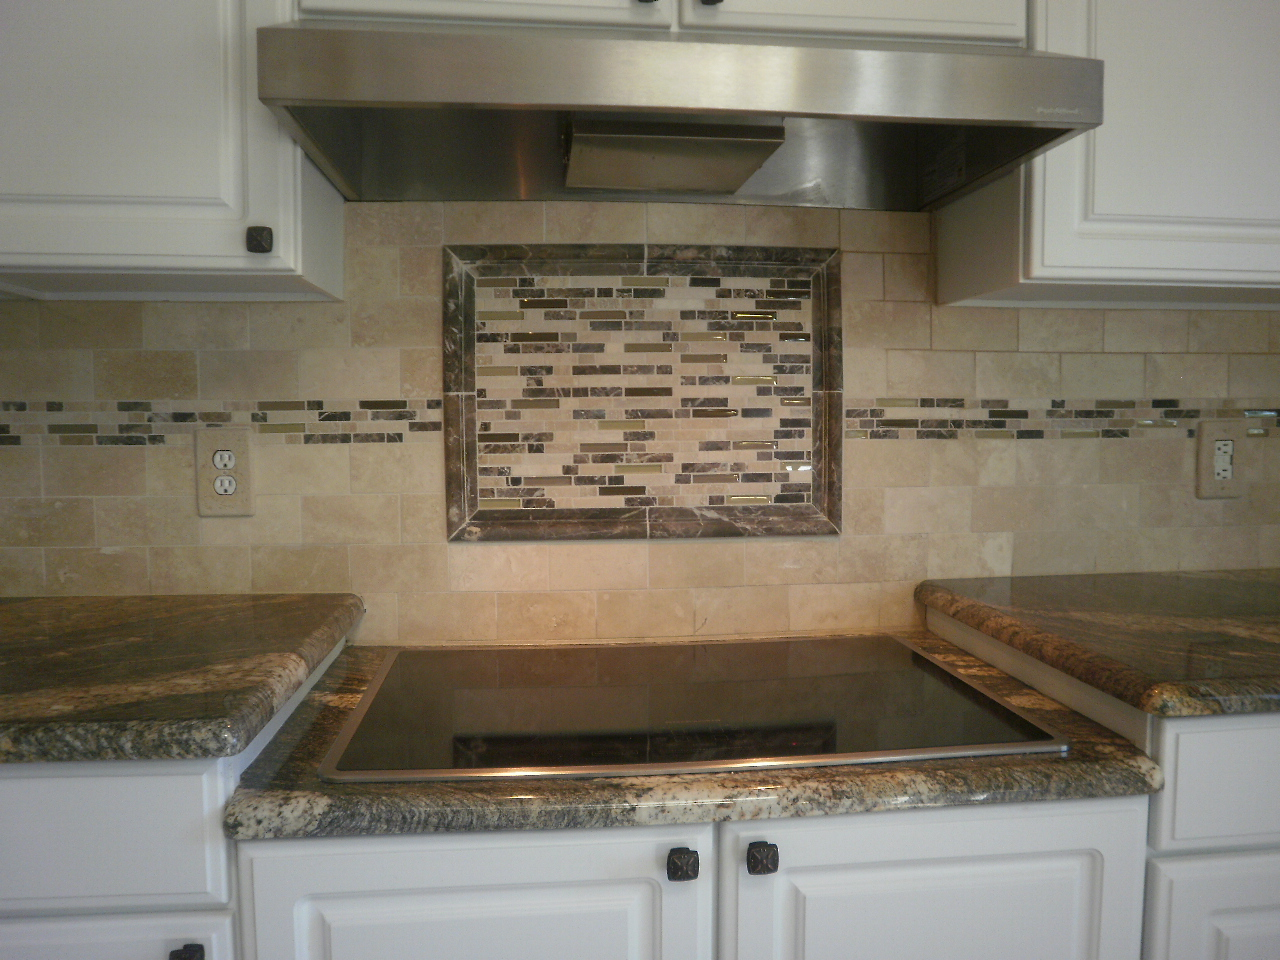 Integrity installations a division of front for Bathroom backsplash